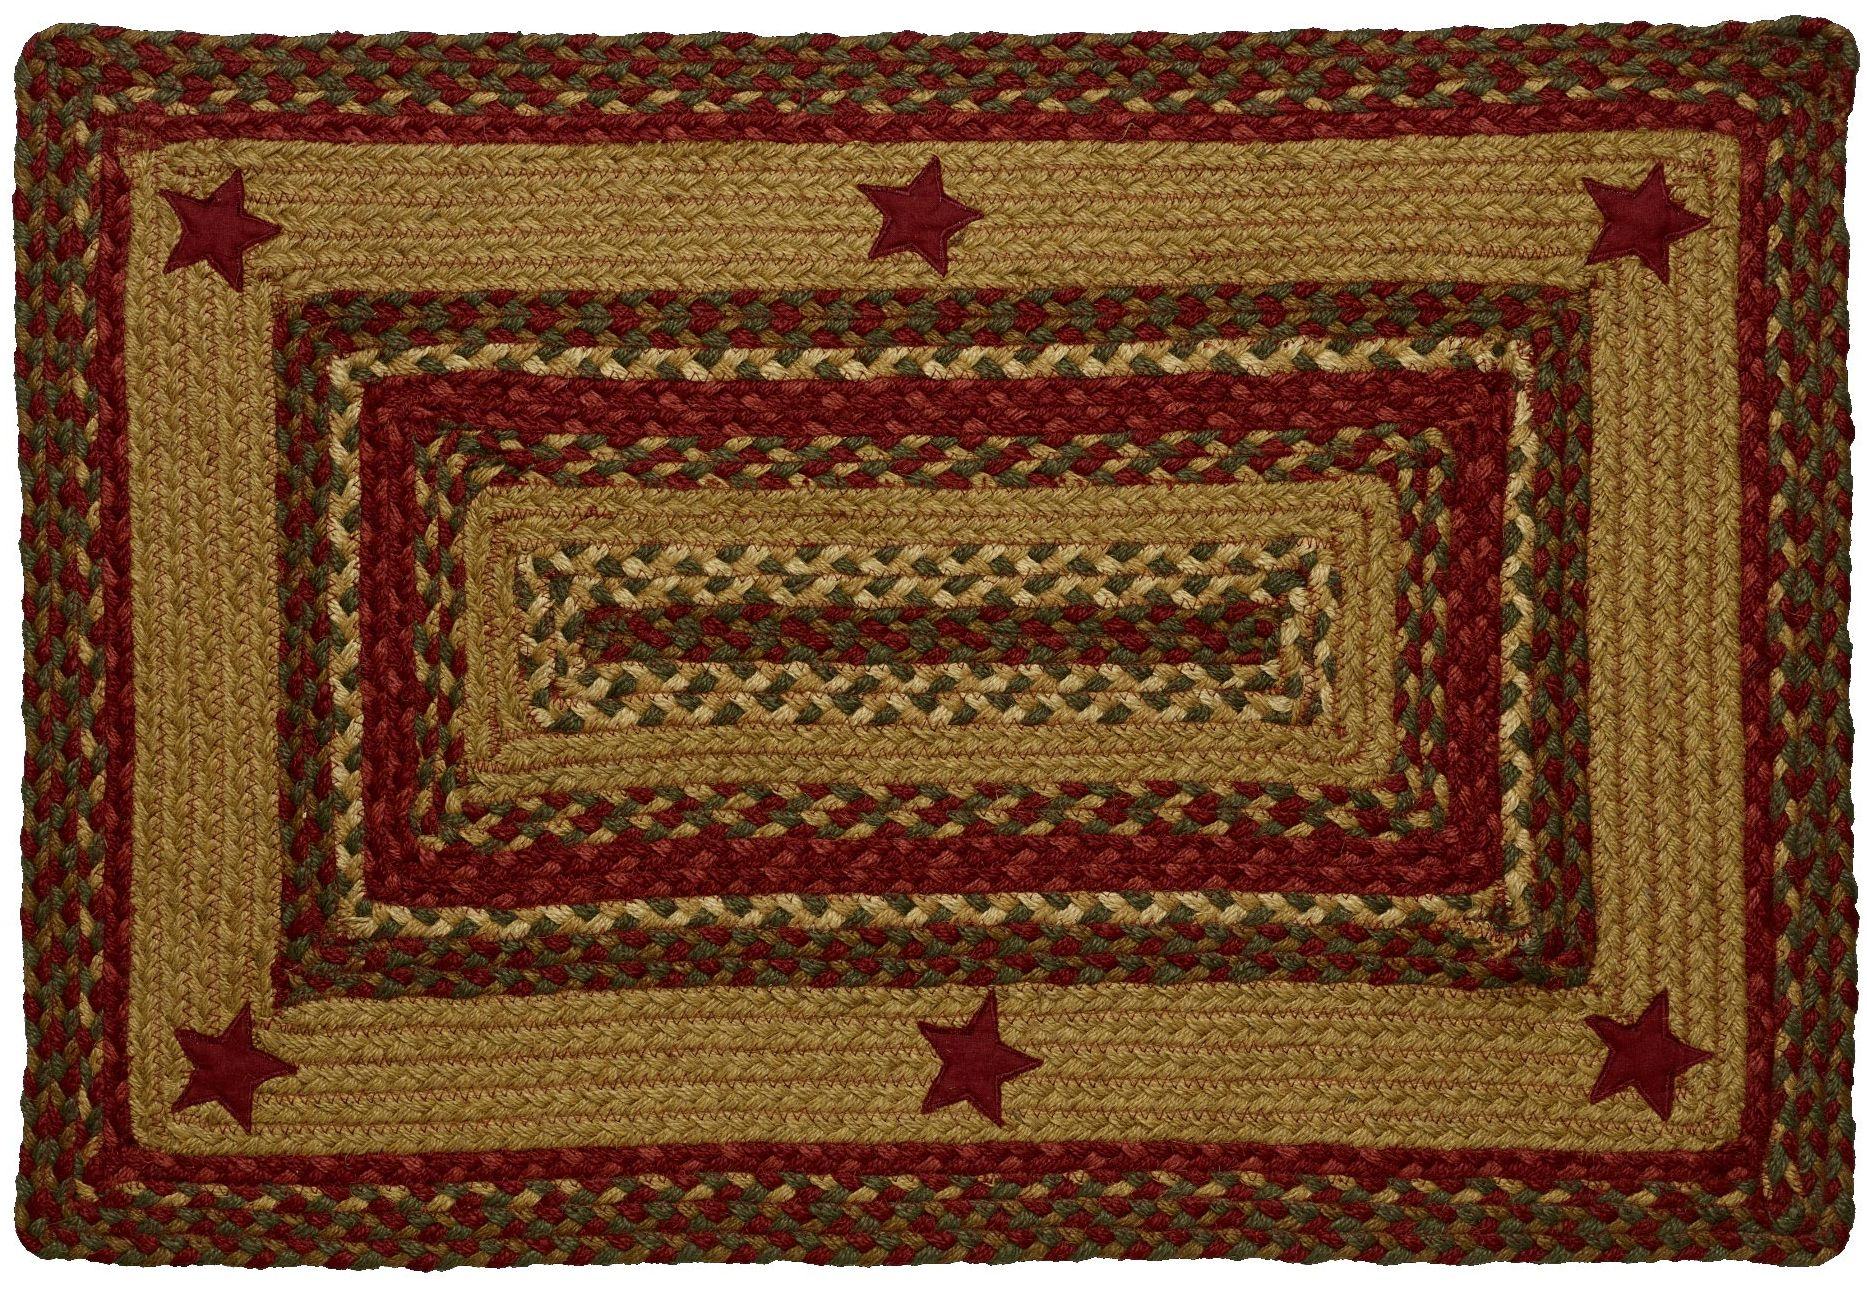 Jute Rug Spotlight Spotlight On Cinnamon Primitive Home Decors